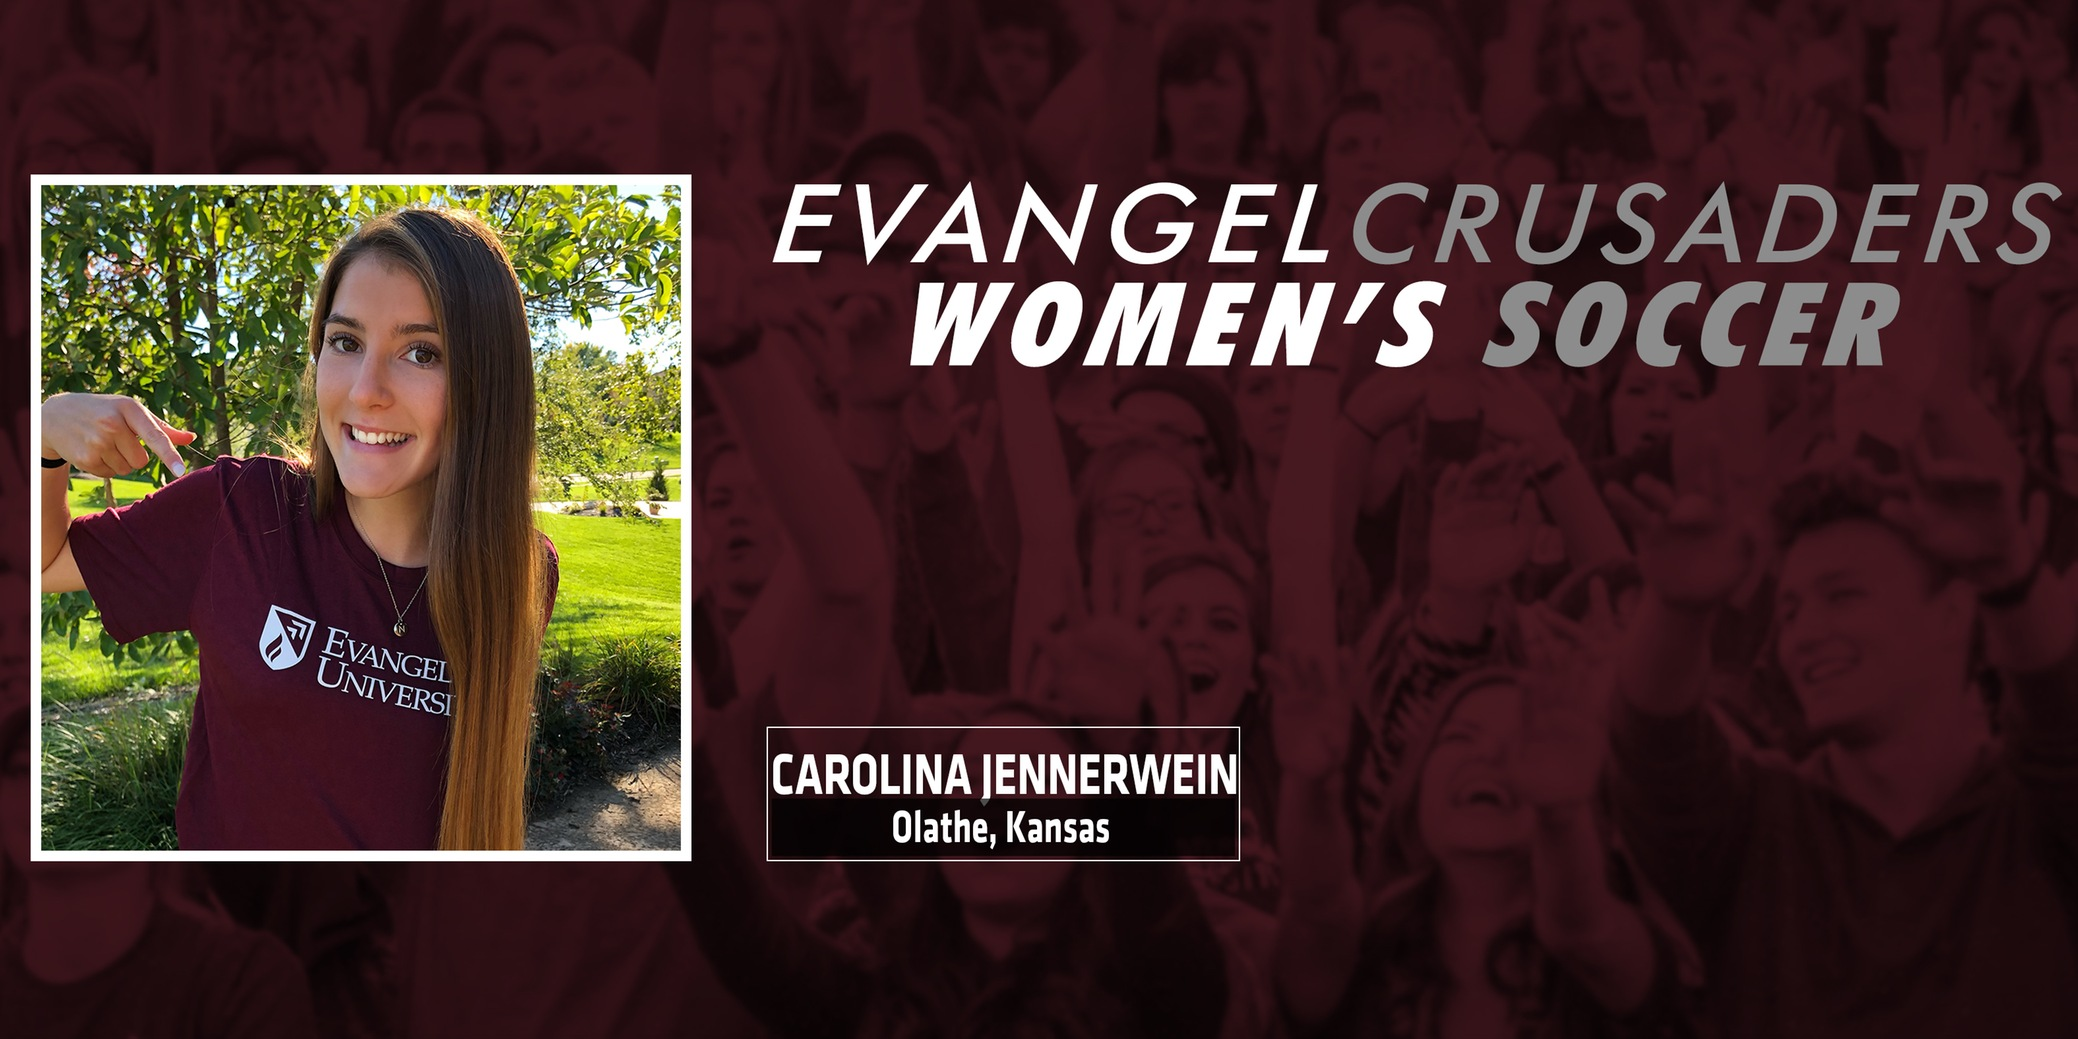 Carolina Jennerwein Commits to Evangel Women's Soccer For 2019